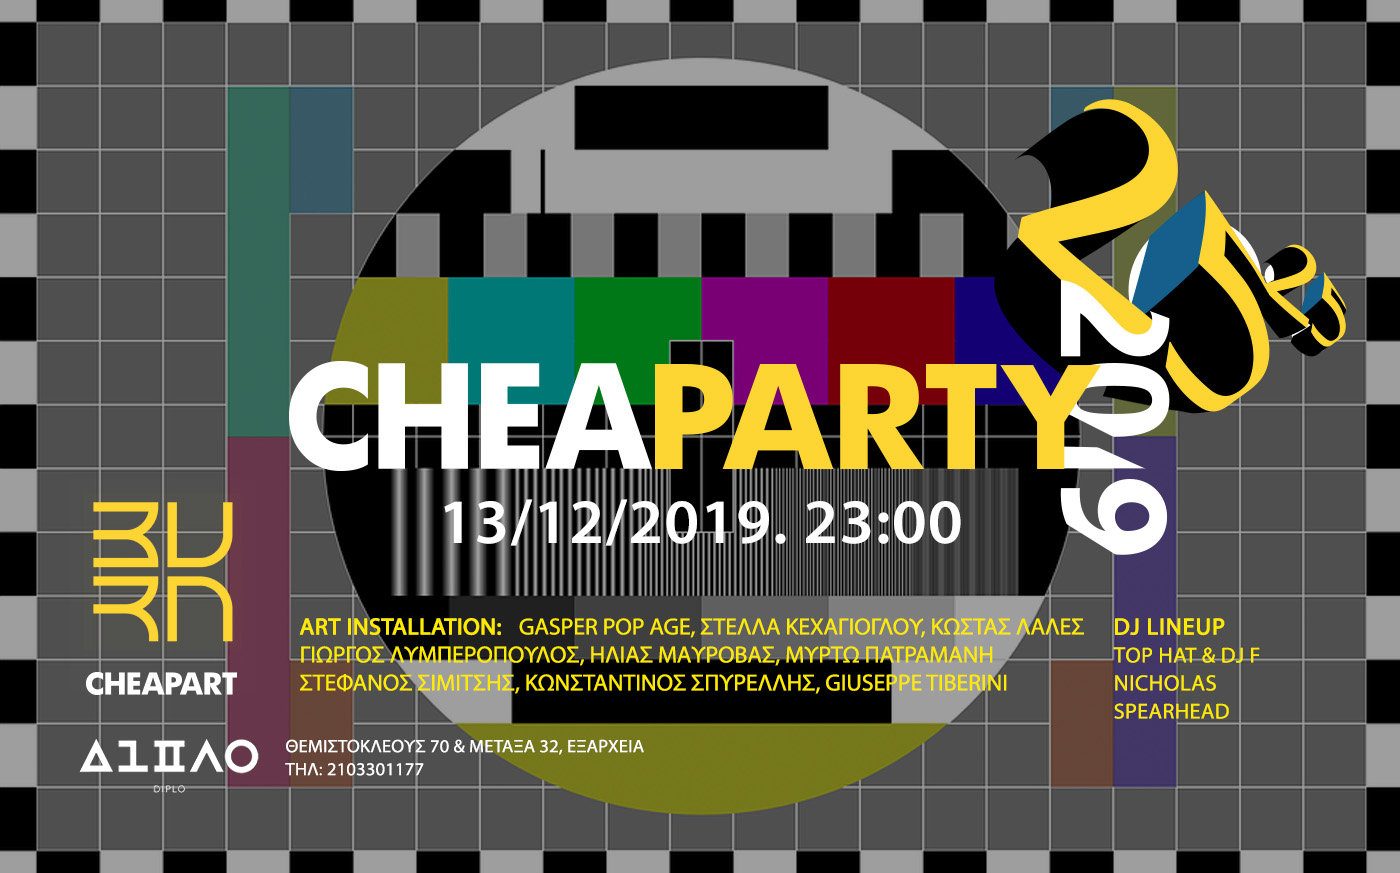 PARTY-CHEAPART-ATHENS-2019